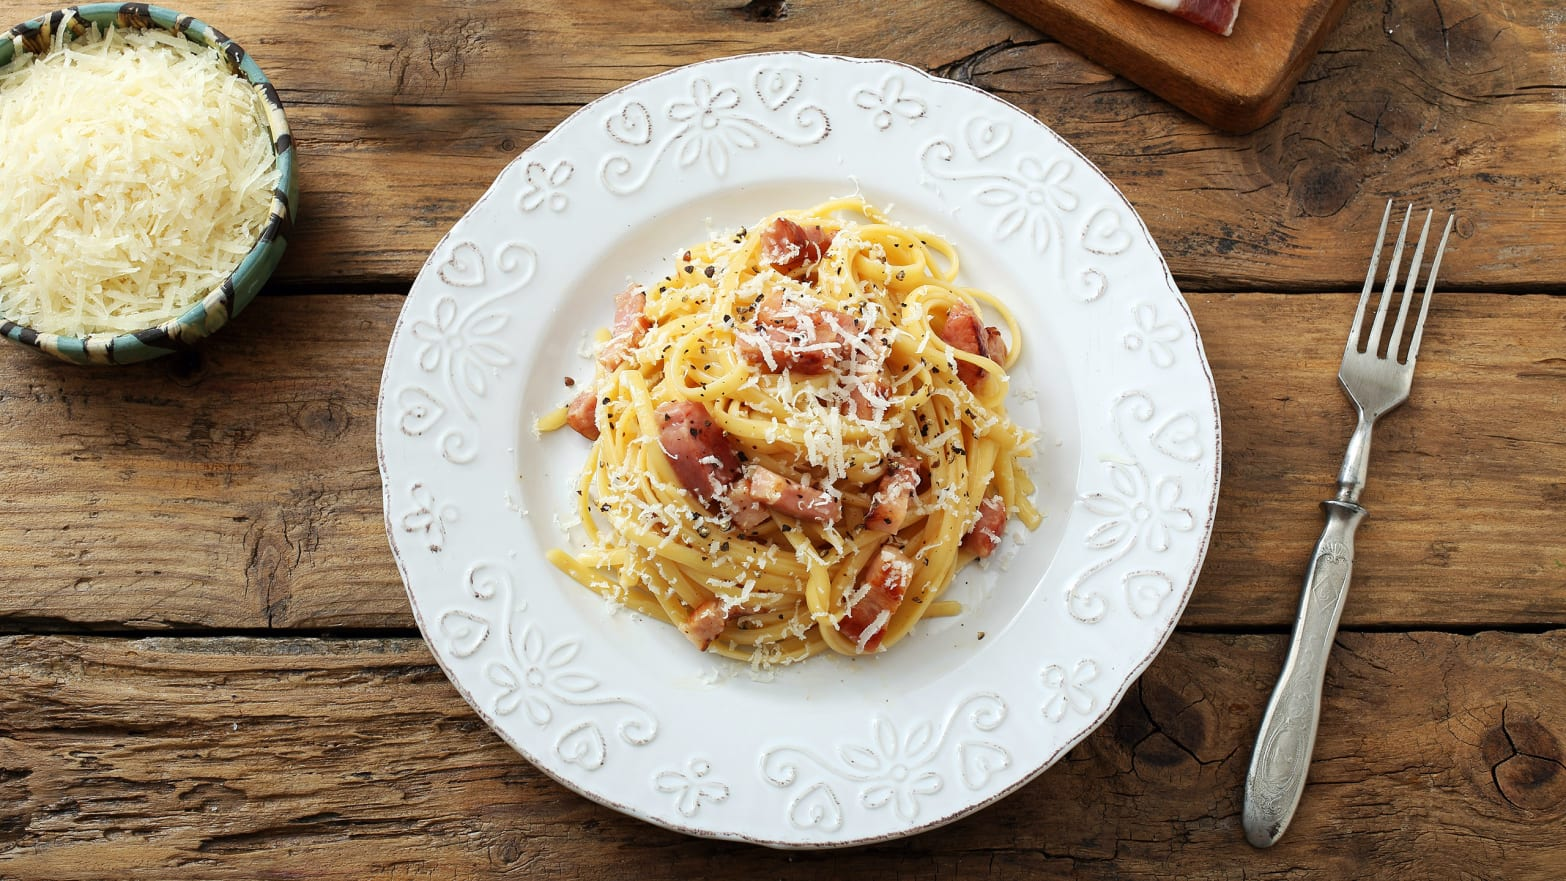 The Quest for the Perfect Spaghetti Carbonara